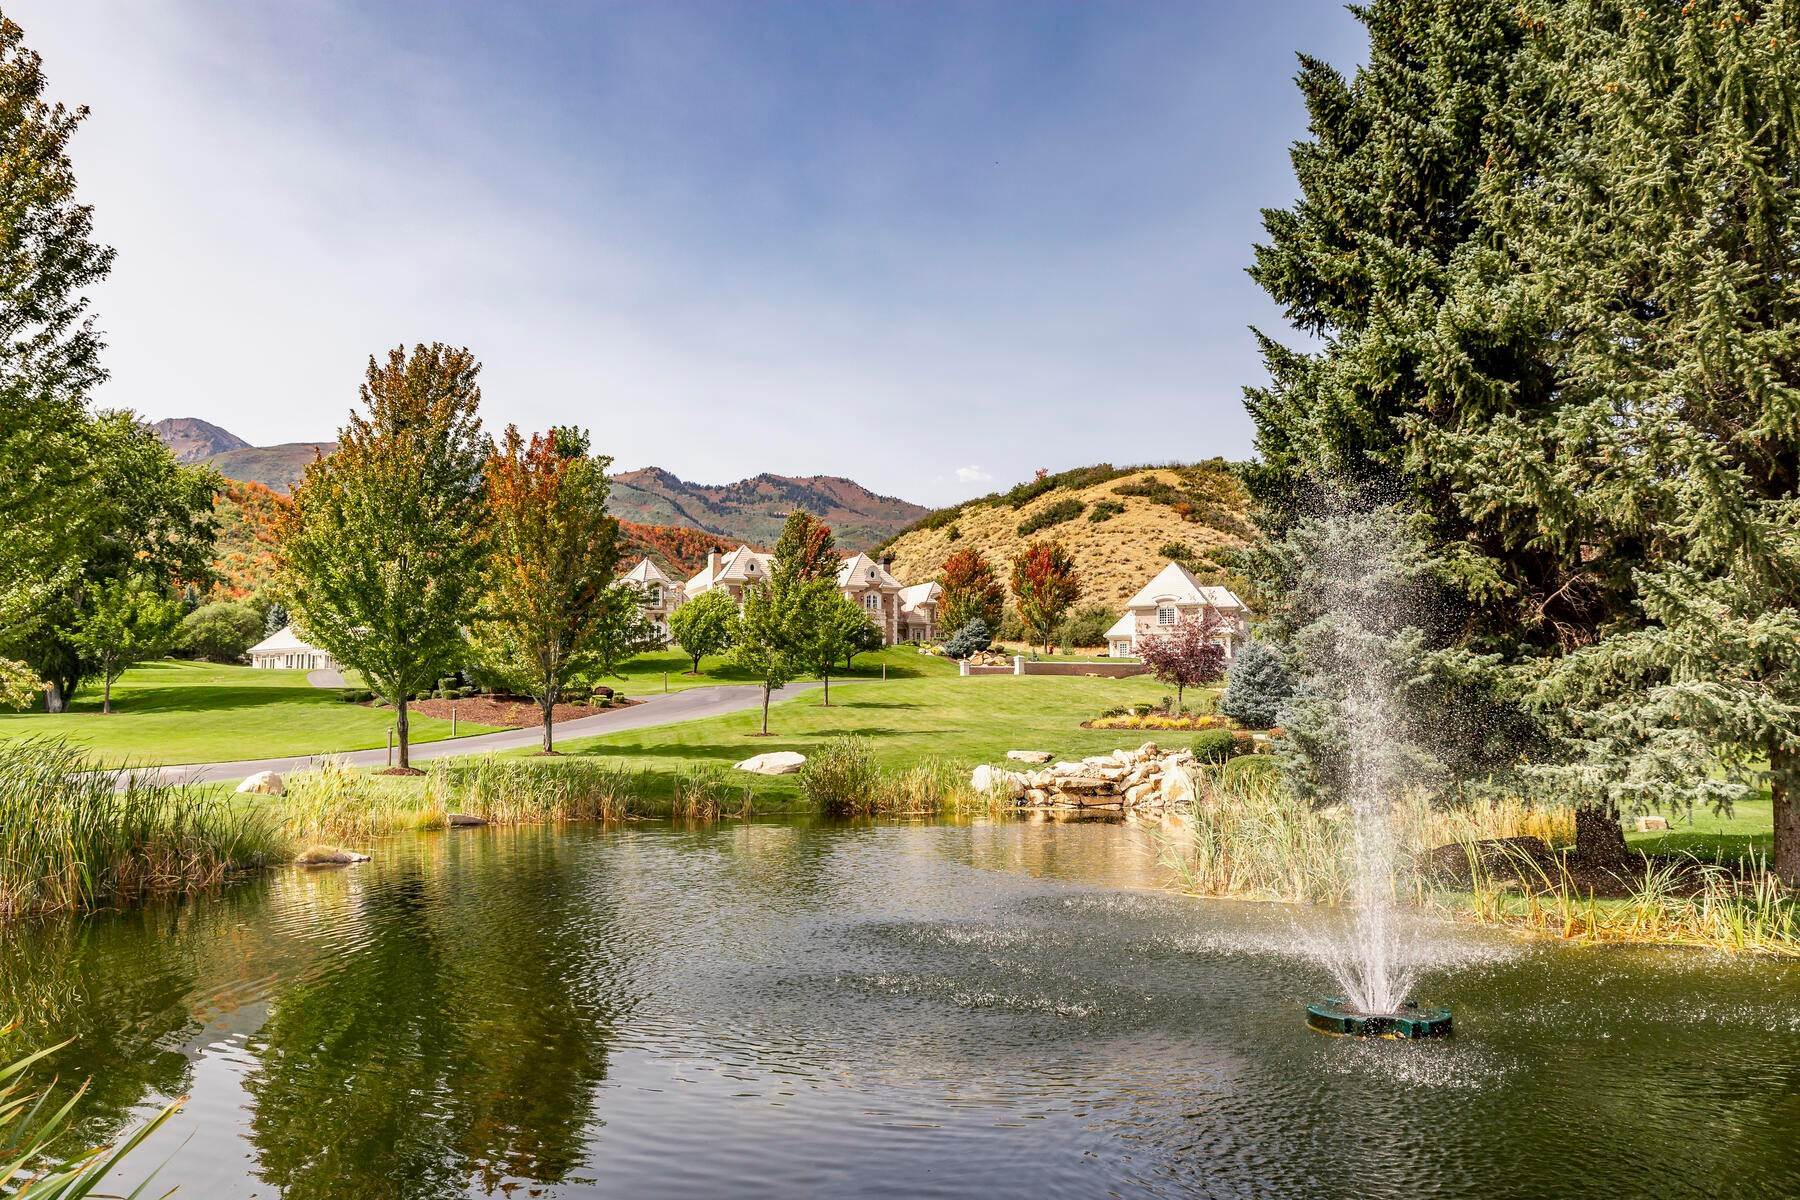 32. Farm and Ranch Properties à 533 N Left Fork Hobble Creek Cyn Springville, Utah 84663 États-Unis